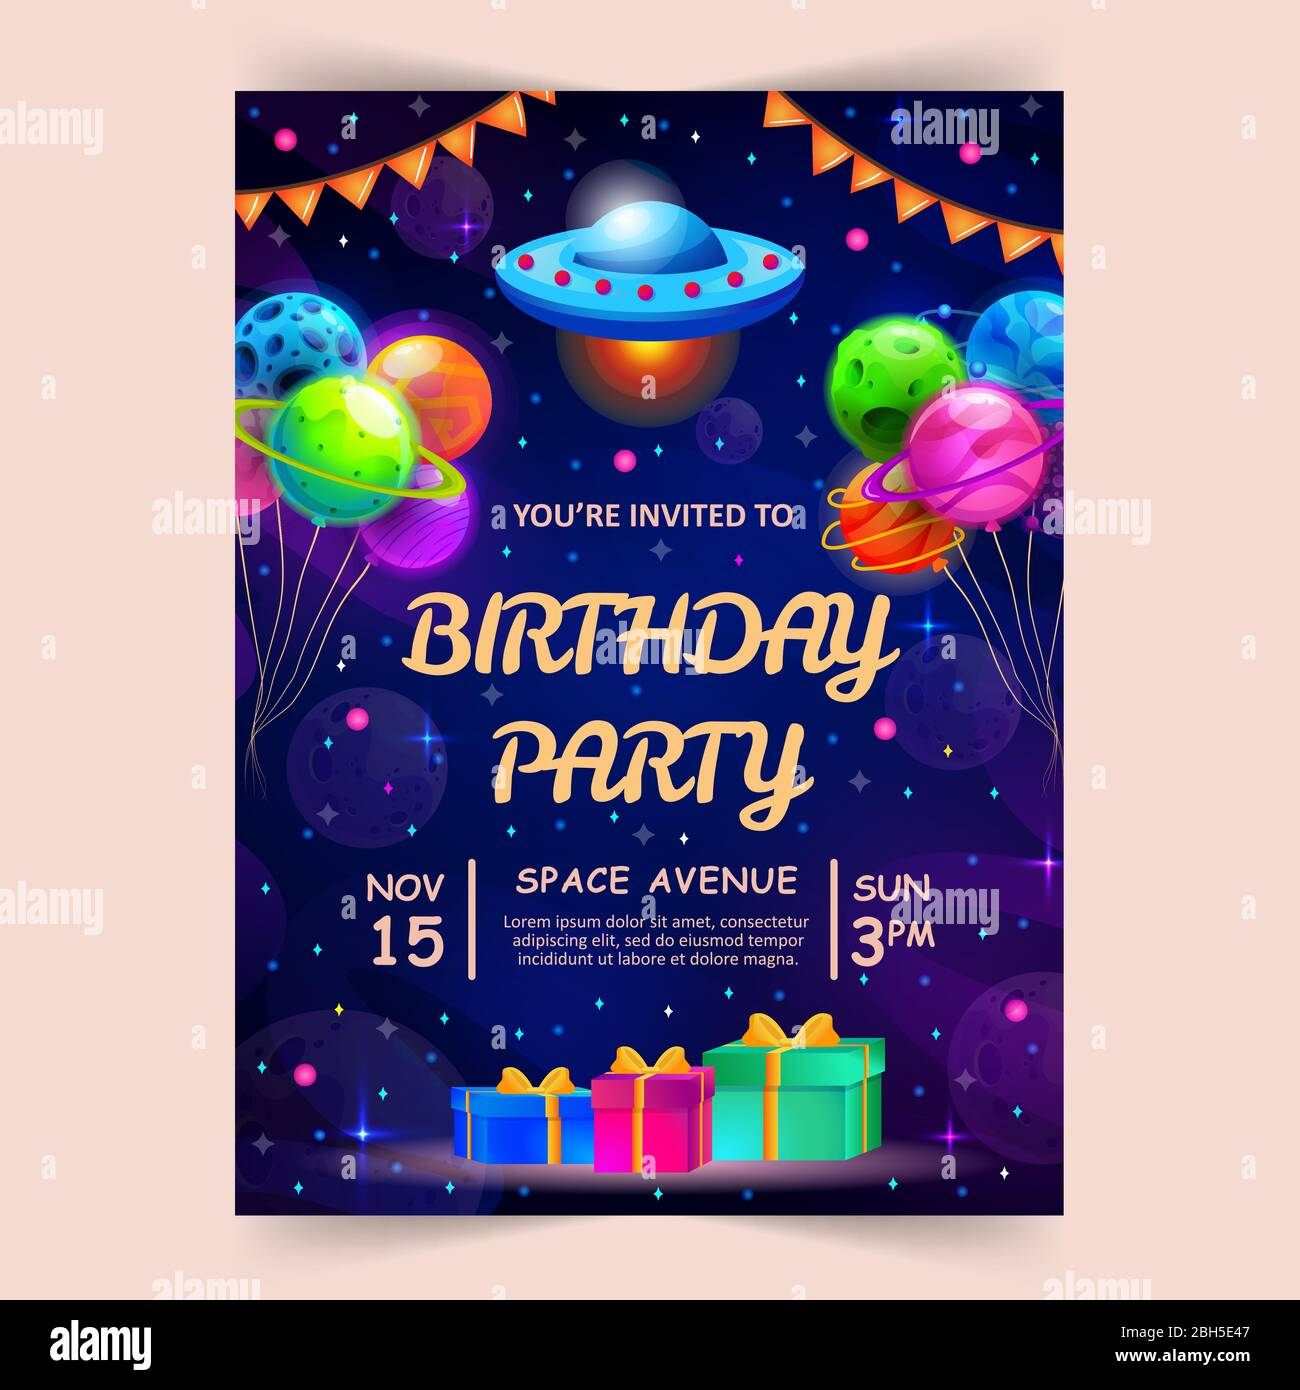 https www alamy com kids birthday party invitation card with cute little planets and ufo space universe and sky background vector illustration image354777367 html